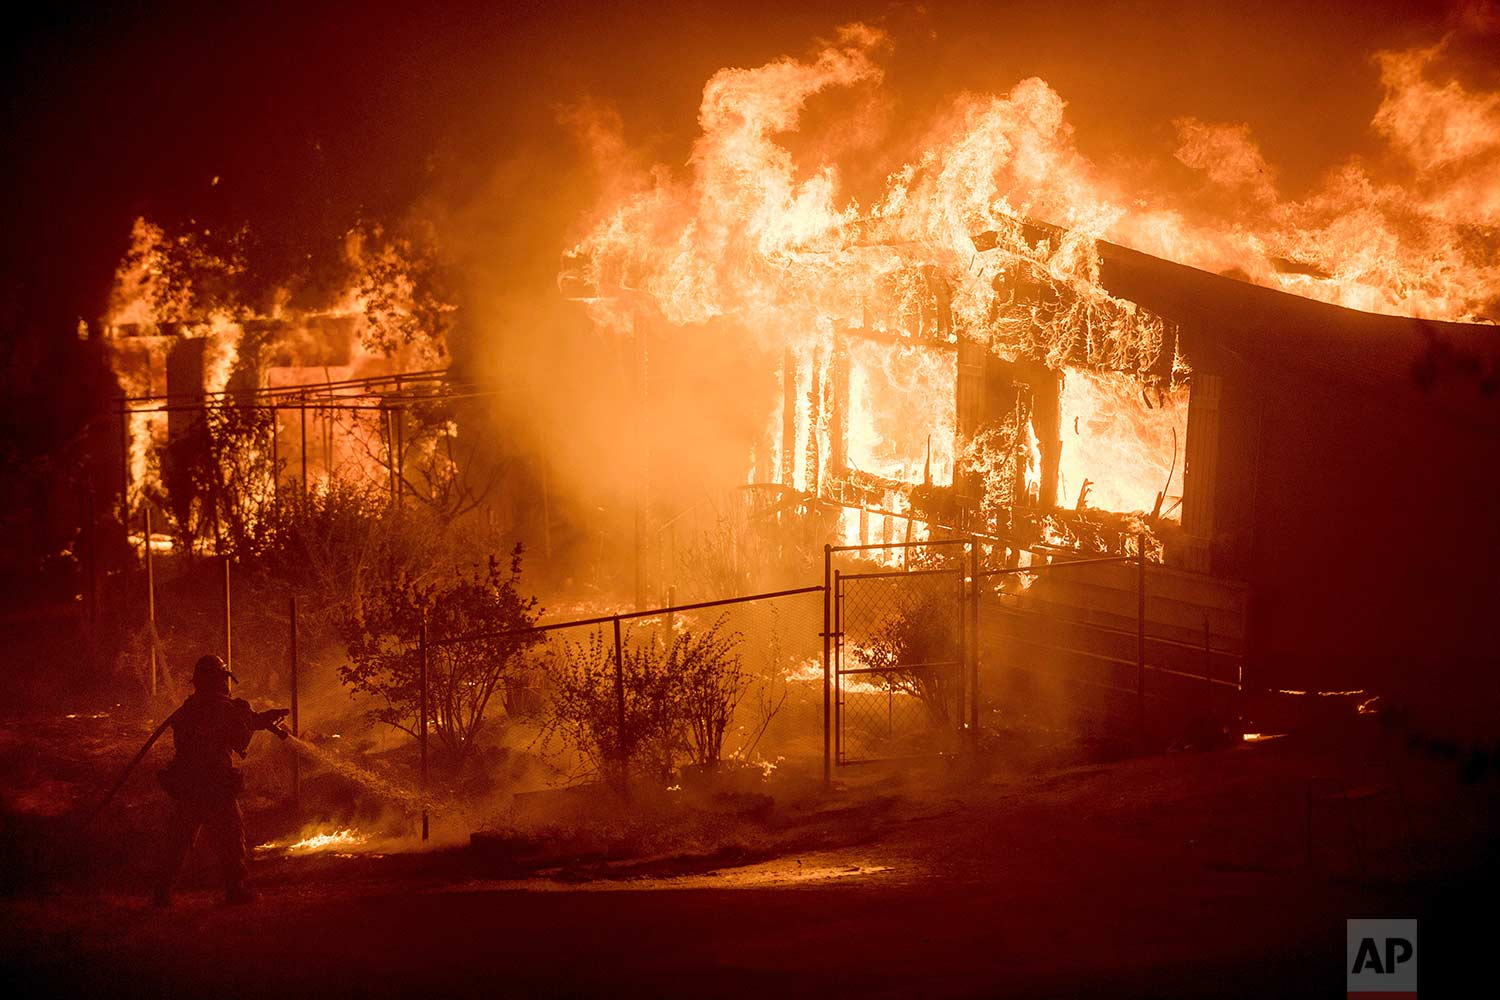 A firefighter sprays water as flames from a wildfire engulf a residence near Oroville, Calif., on Sunday, July 9, 2017. (AP Photo/Noah Berger)